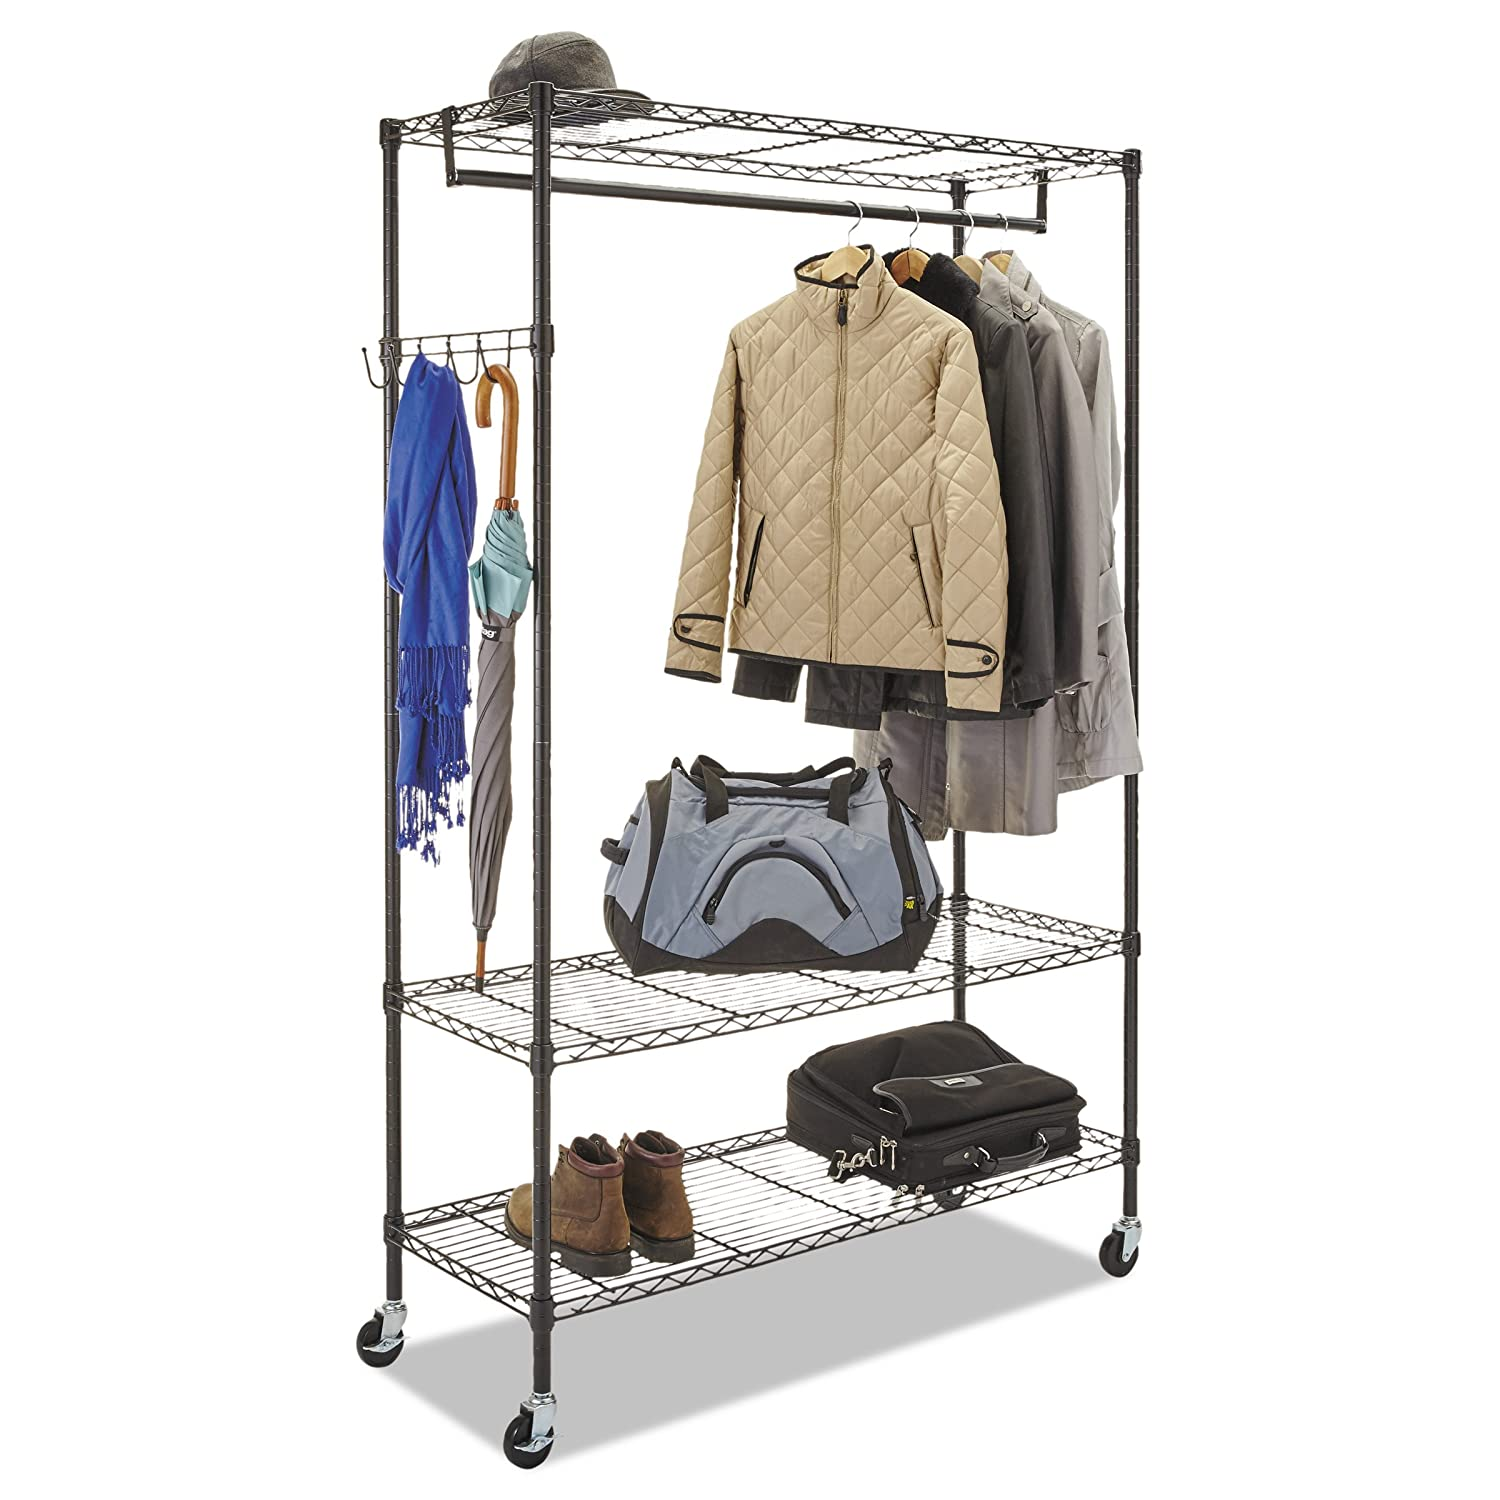 Alera Wire Shelving Garment Rack Black